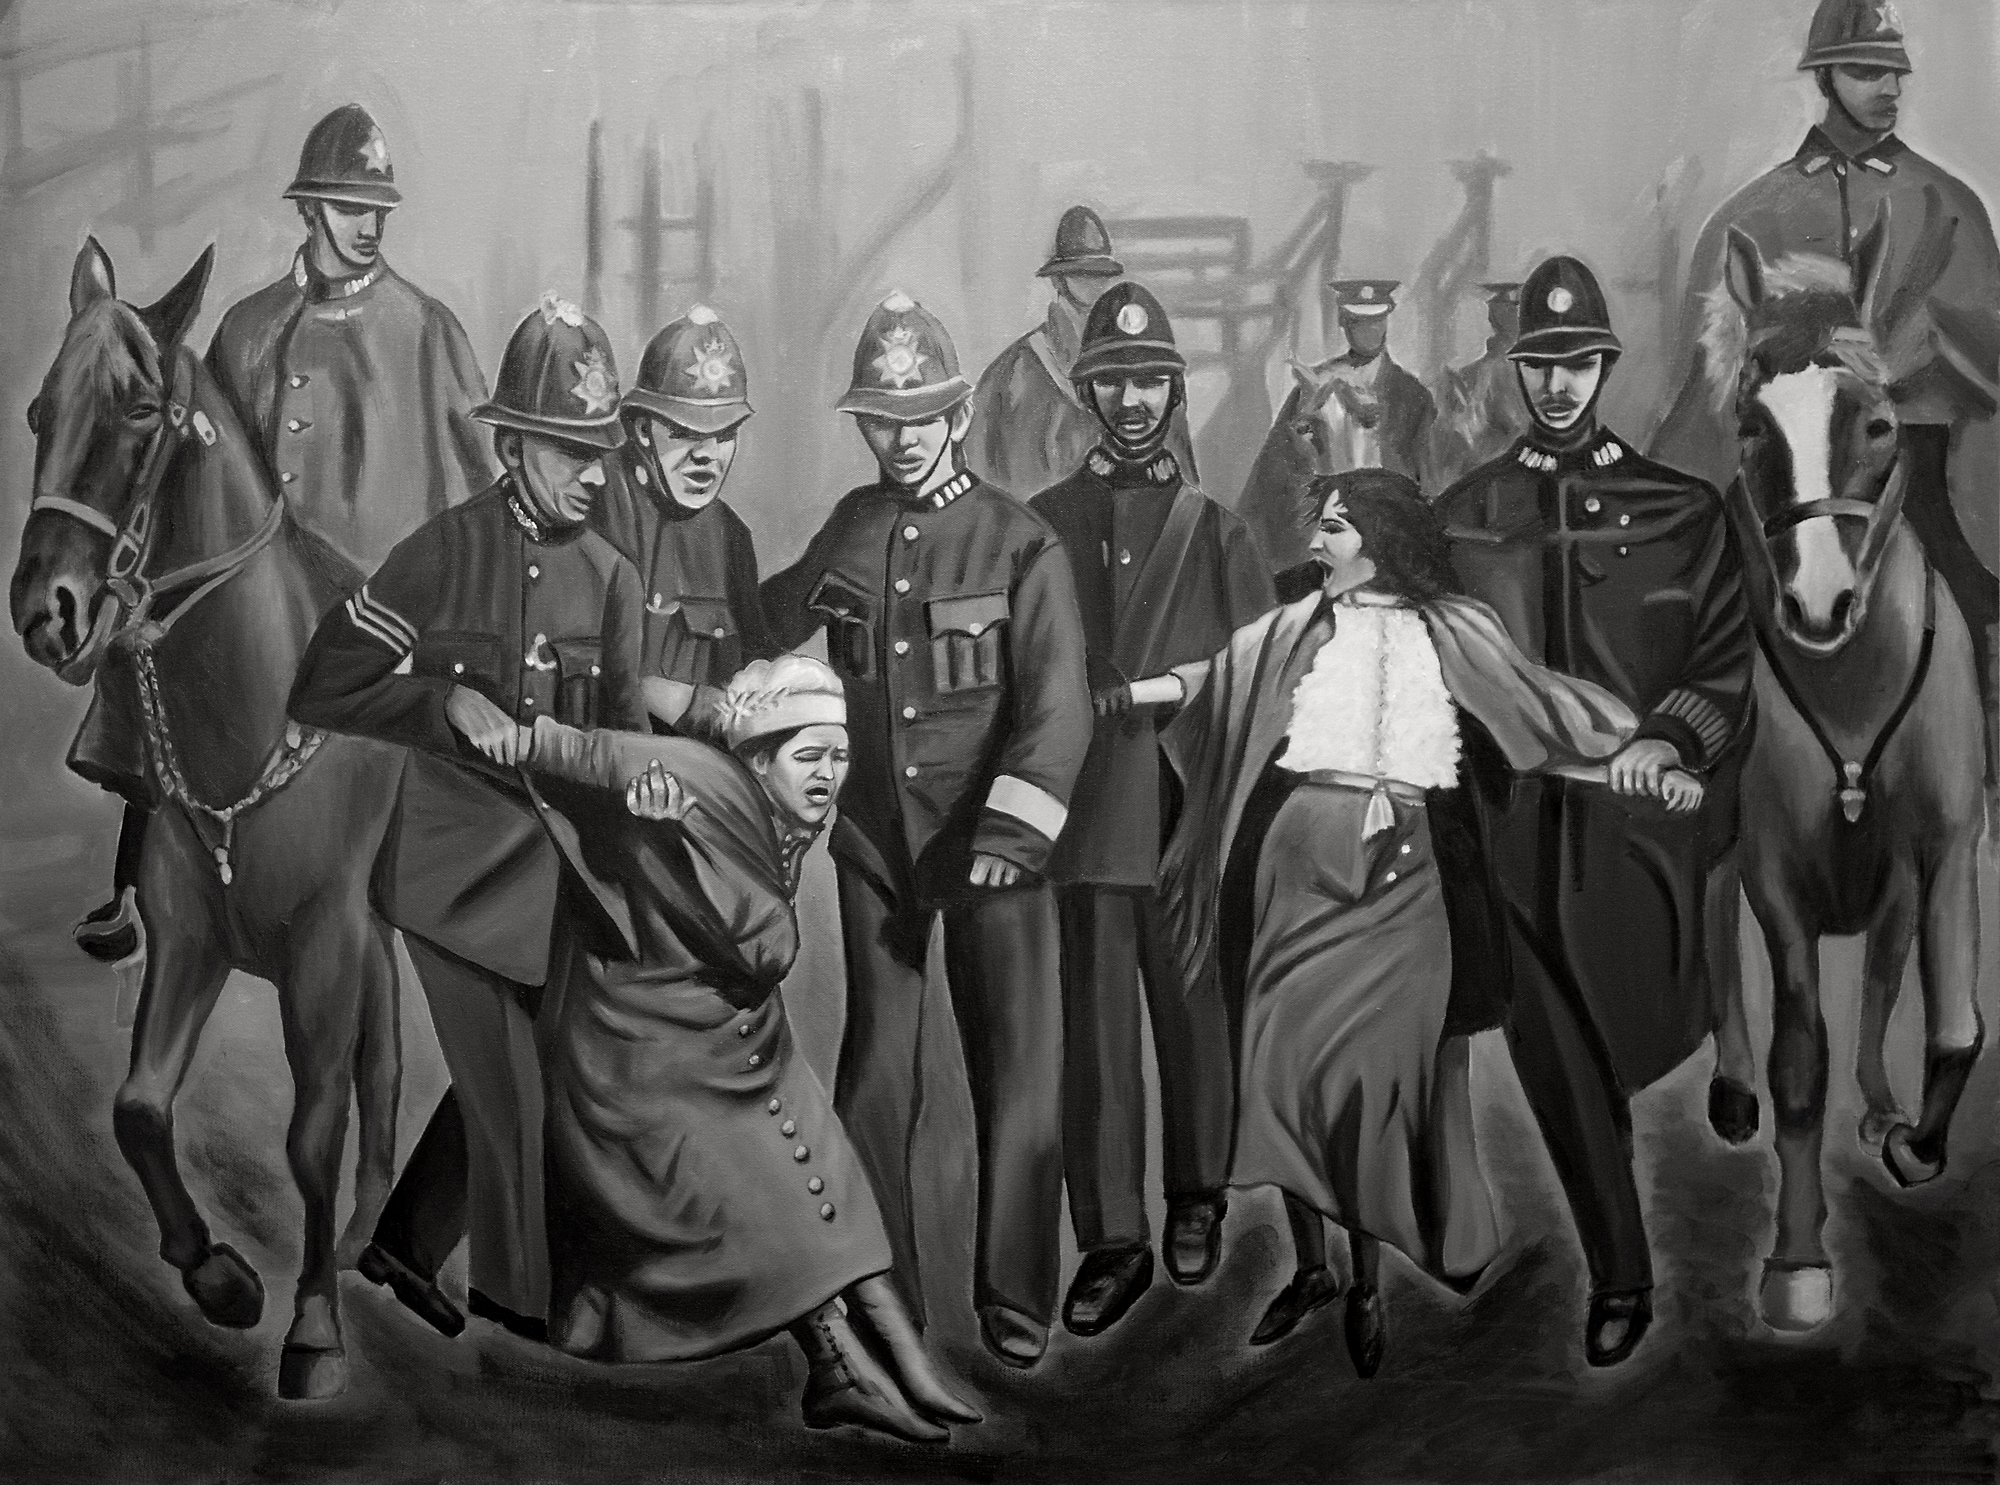 Indira-Cesarine-22Arrested-for-Equality-An-Ode-to-The-Suffragettes22-2017-Oil-on-Canvas-The-Untitled-Space-SHE-INSPIRES-Exhibit-May-2017-V2-1.jpg